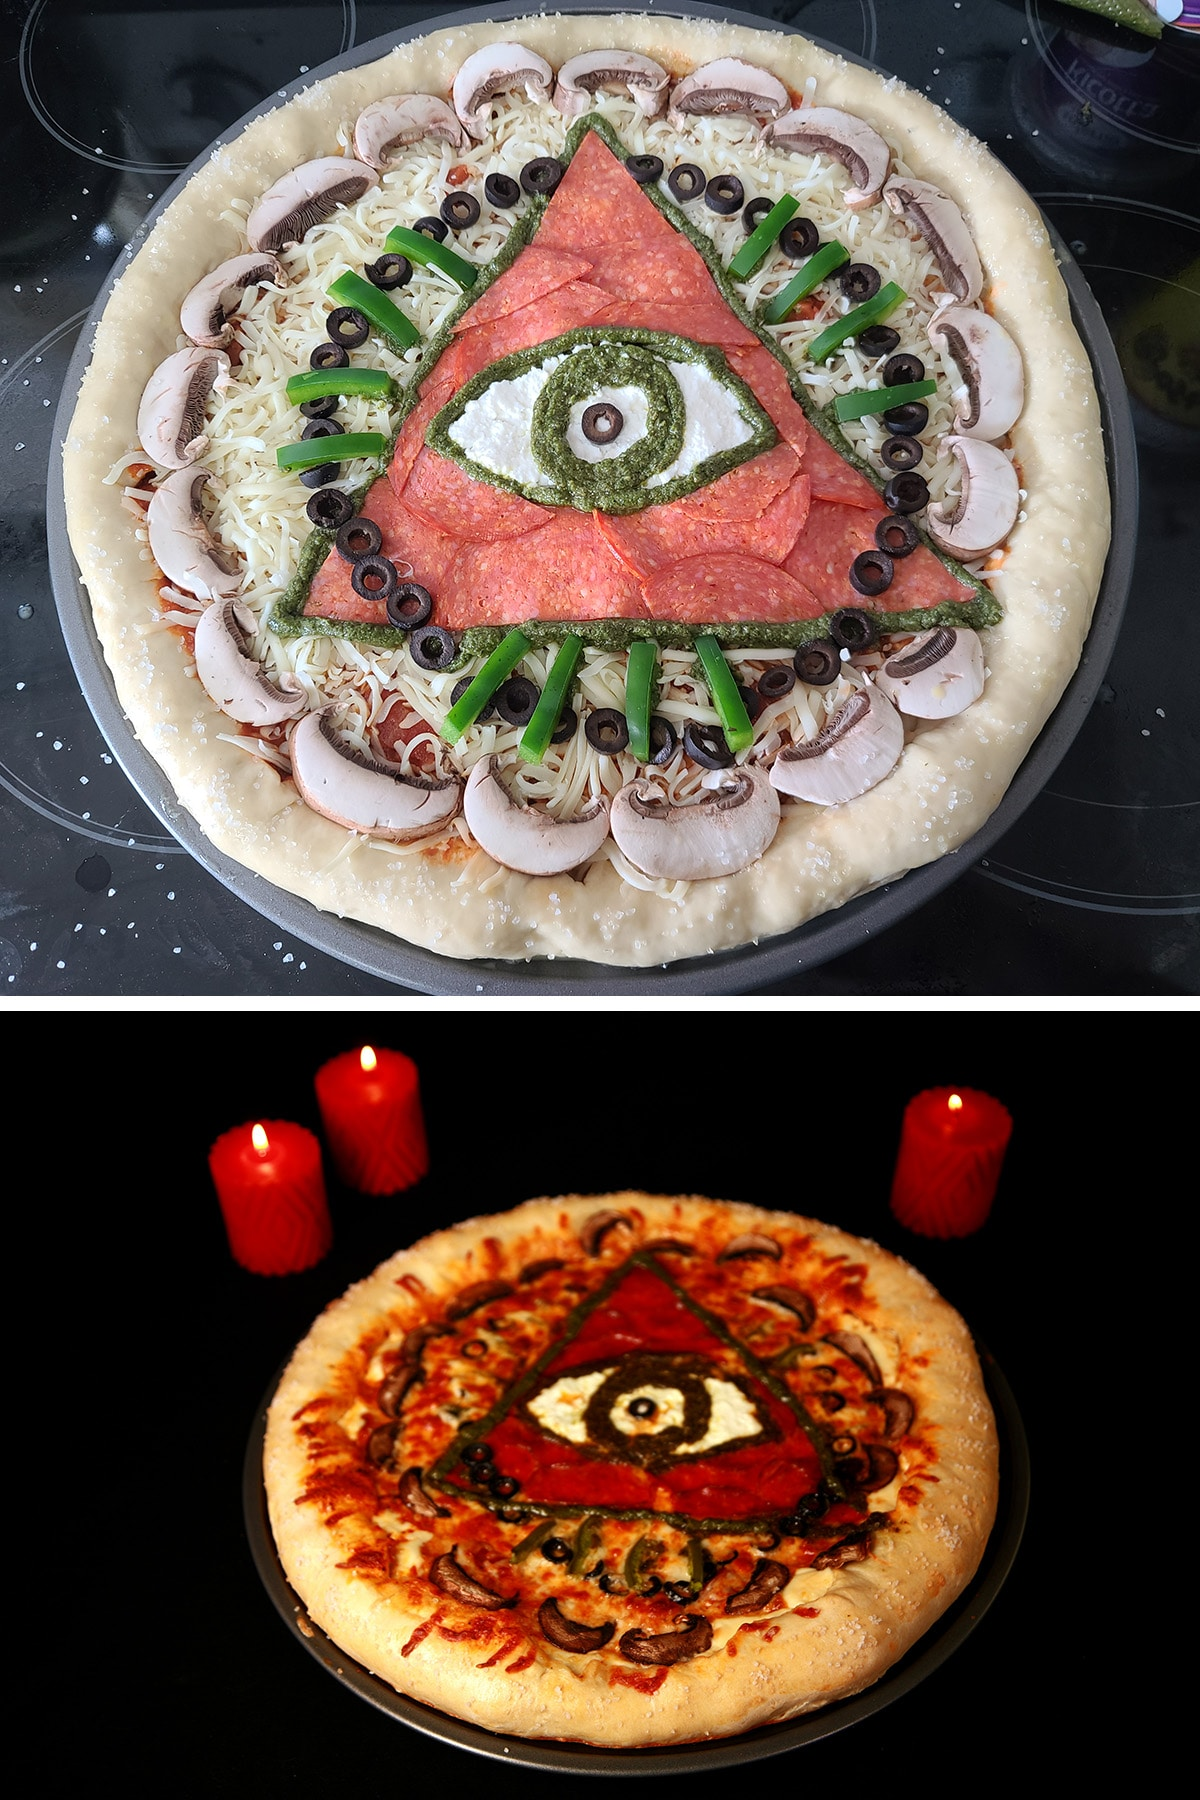 """A pizza with an occult design - pepperoni triange with ricotta and pesto eye in the middle, green pepper """"rays"""", and circles of black olives and sliced mushrooms."""